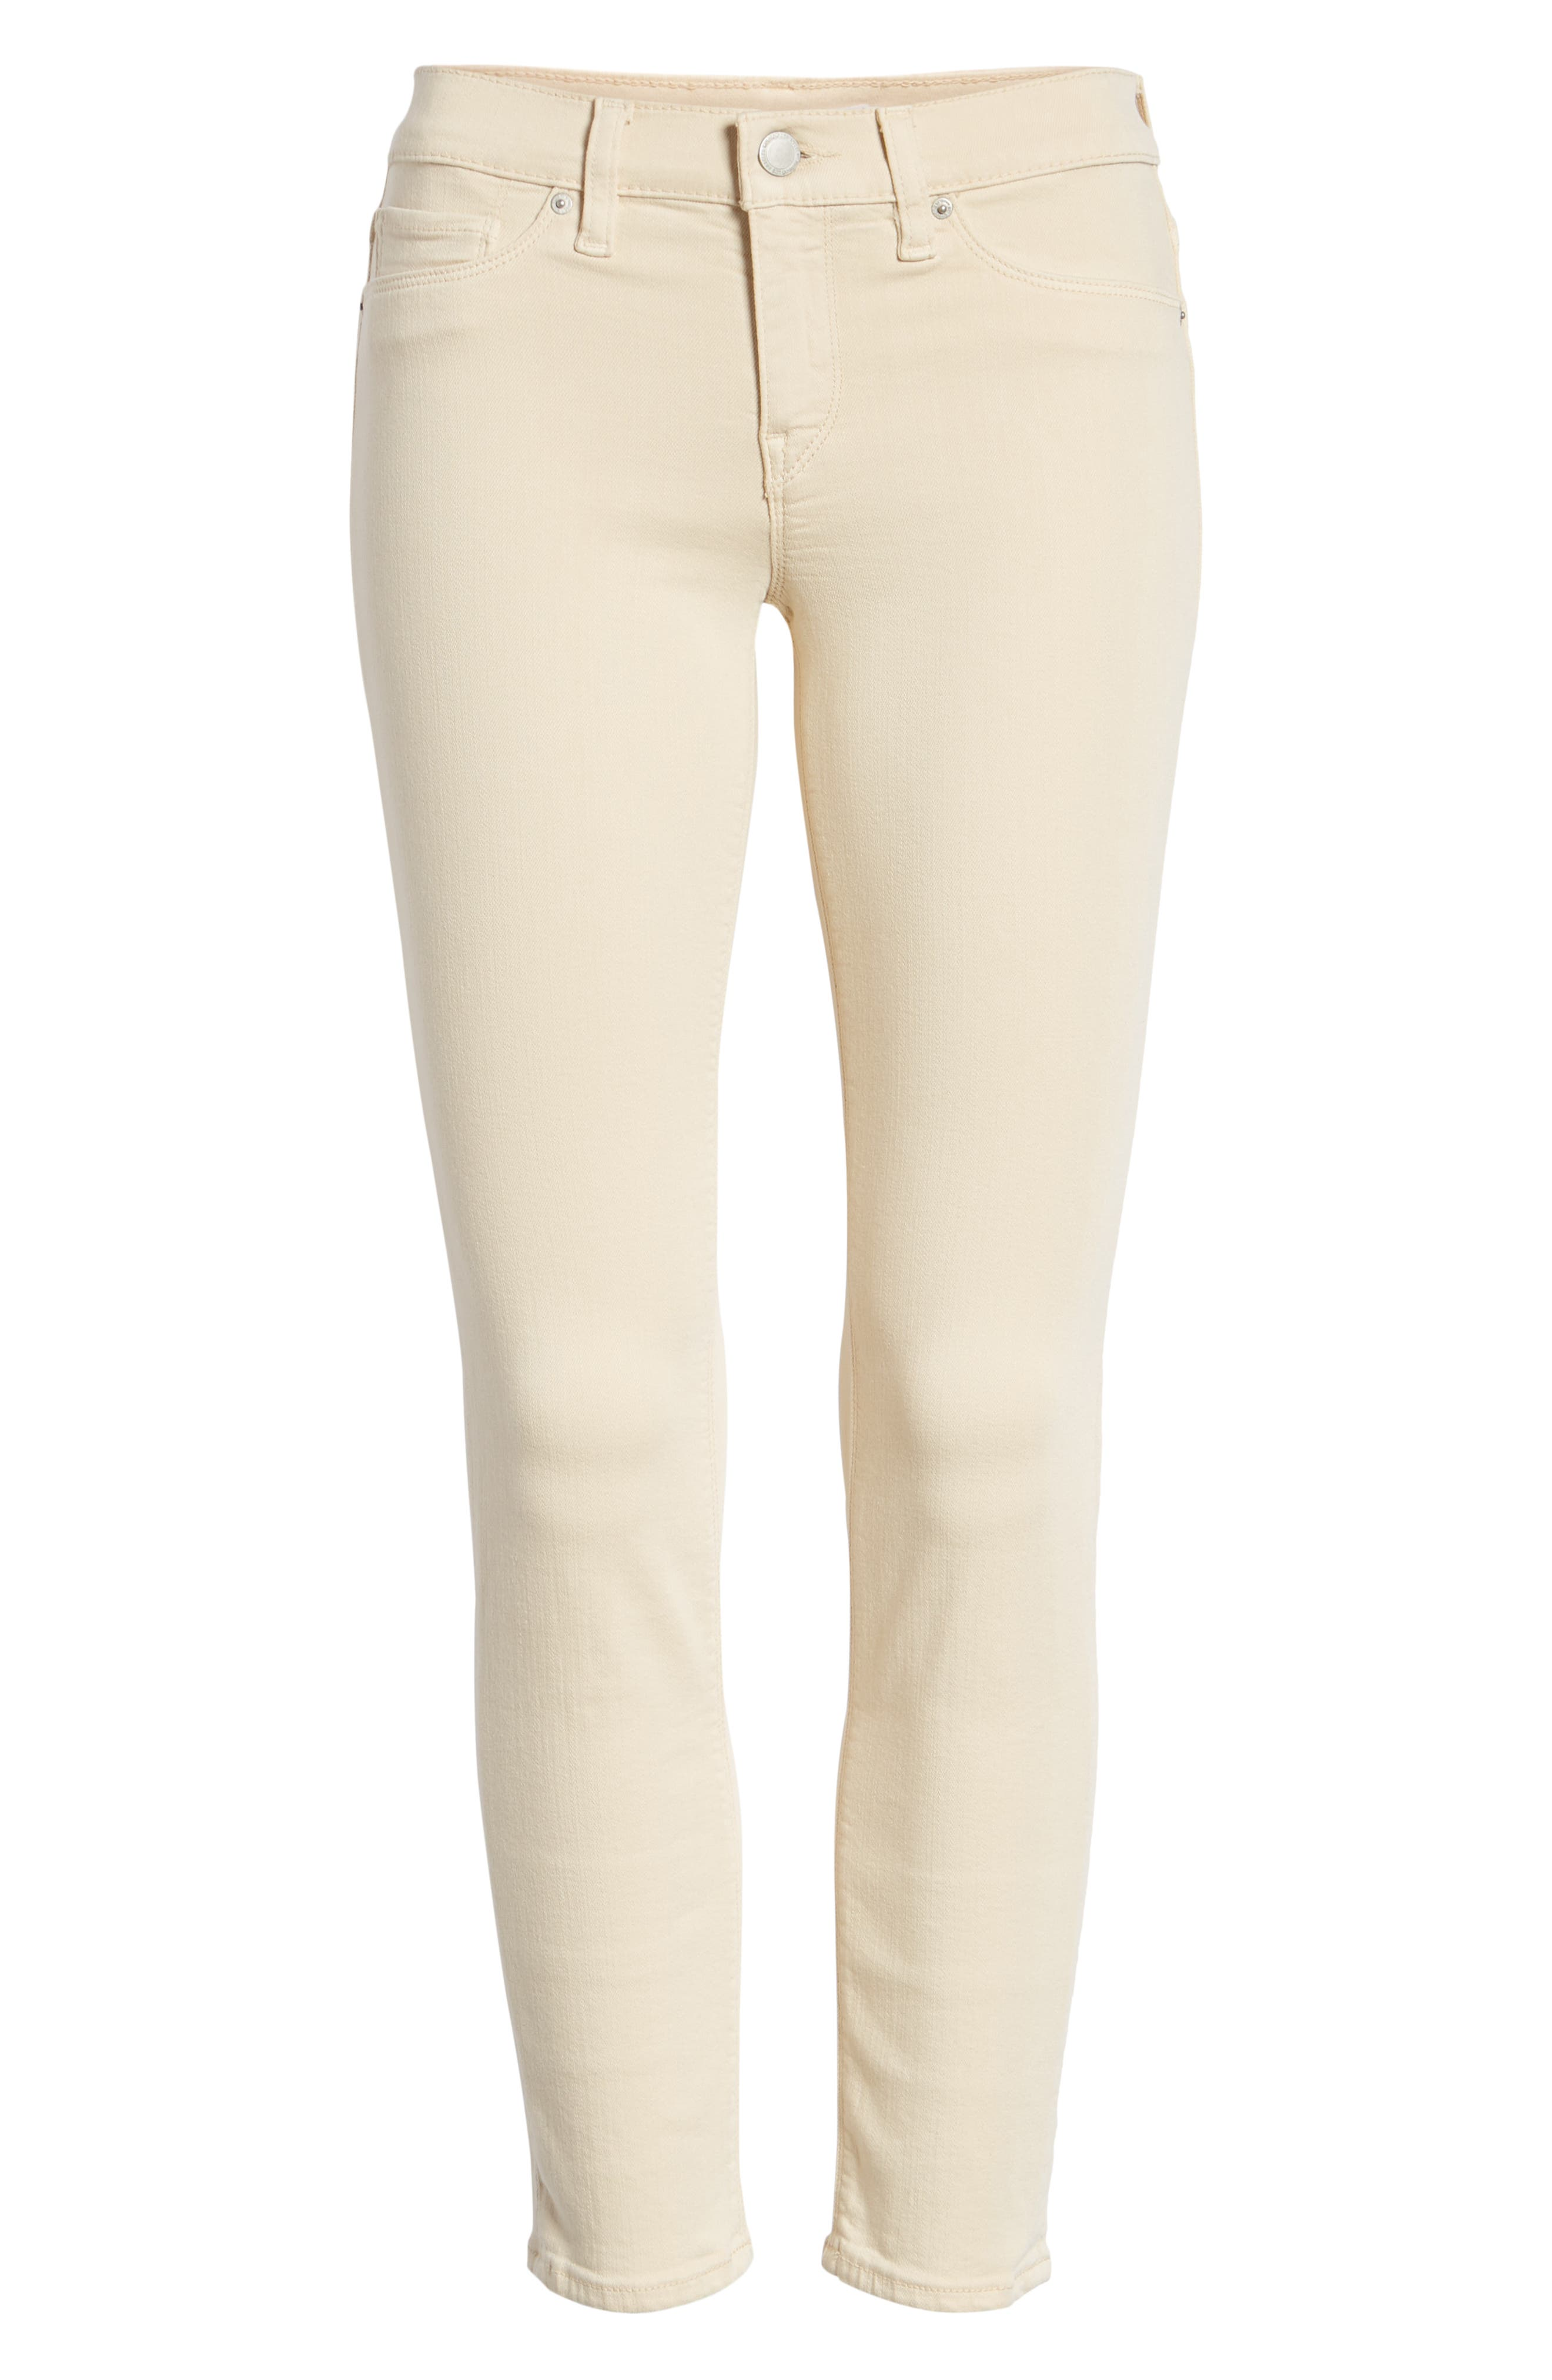 HUDSON JEANS, Tally Ankle Skinny Jeans, Alternate thumbnail 7, color, FAWN